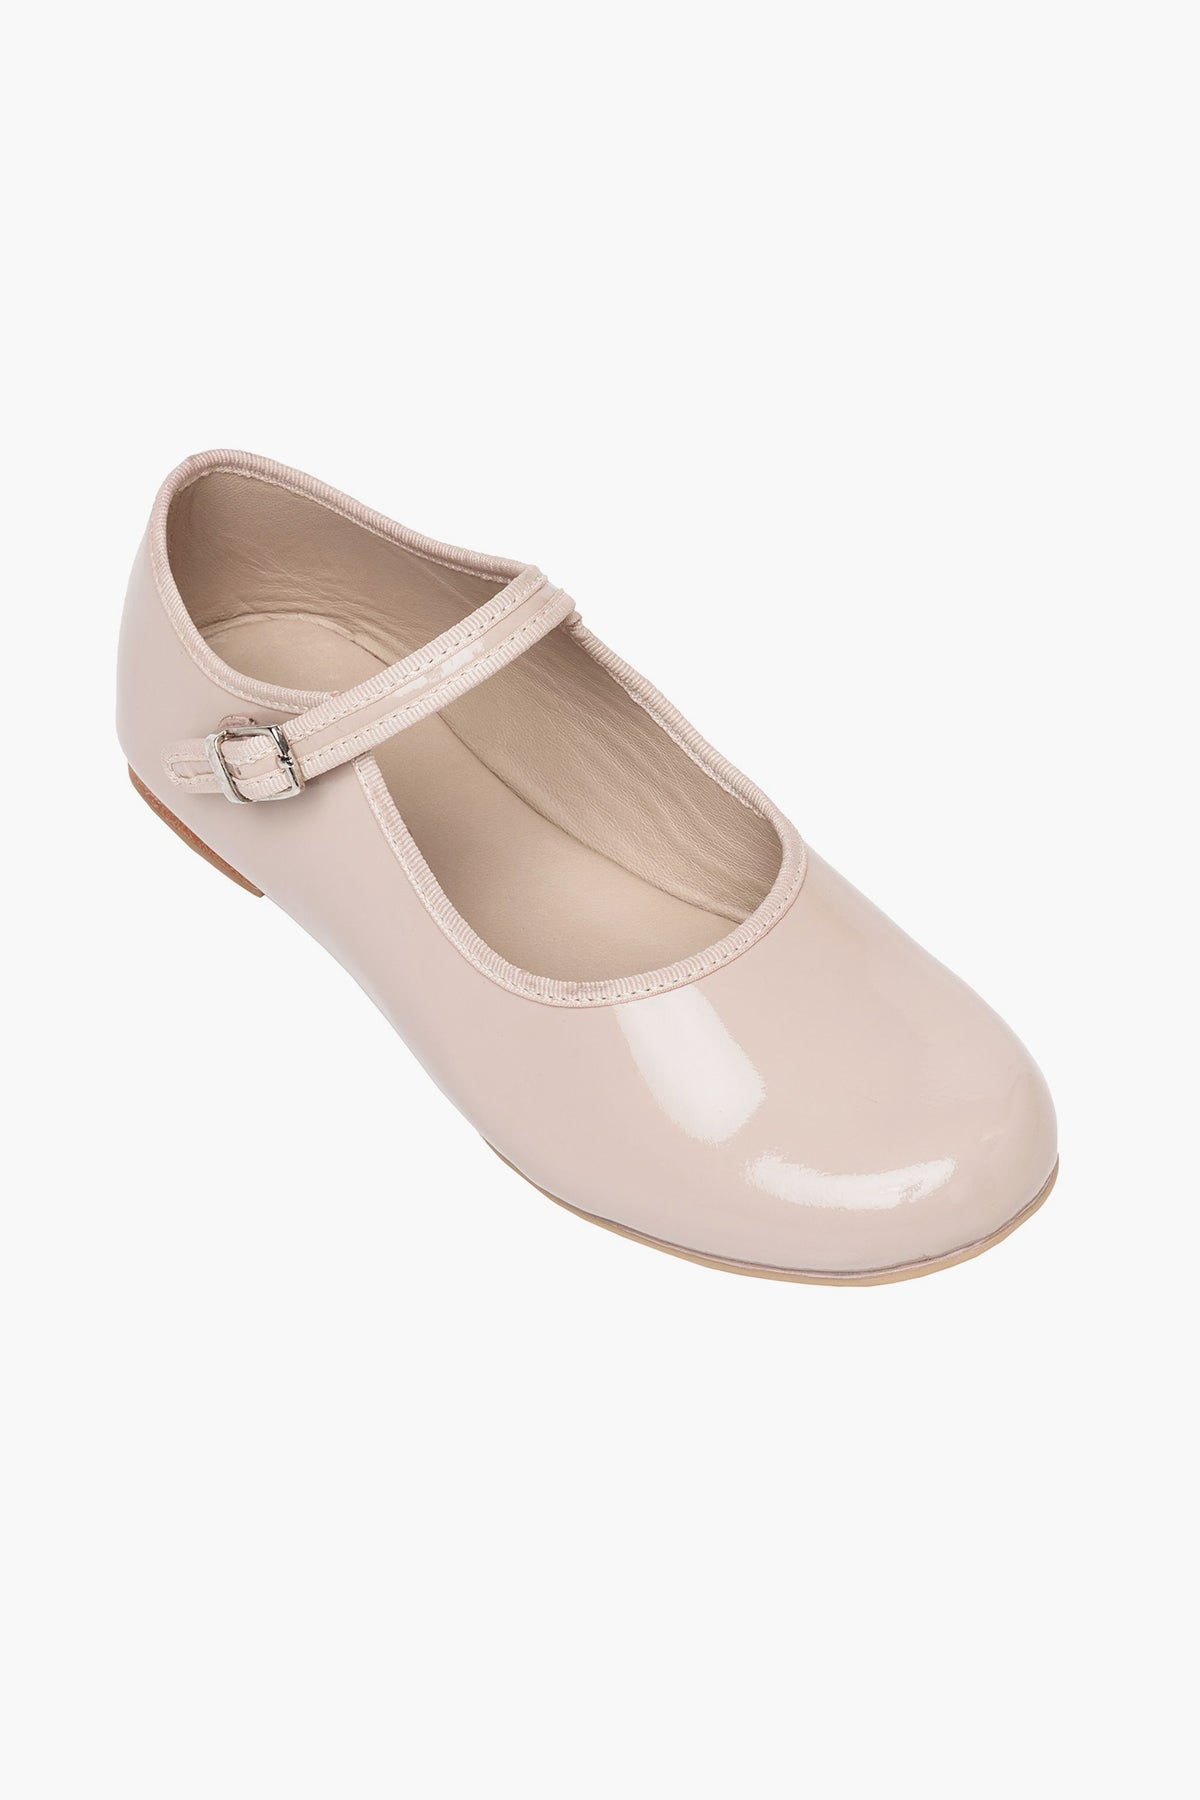 Elephantito Mary Jane Girls Shoes - Dusty Pink